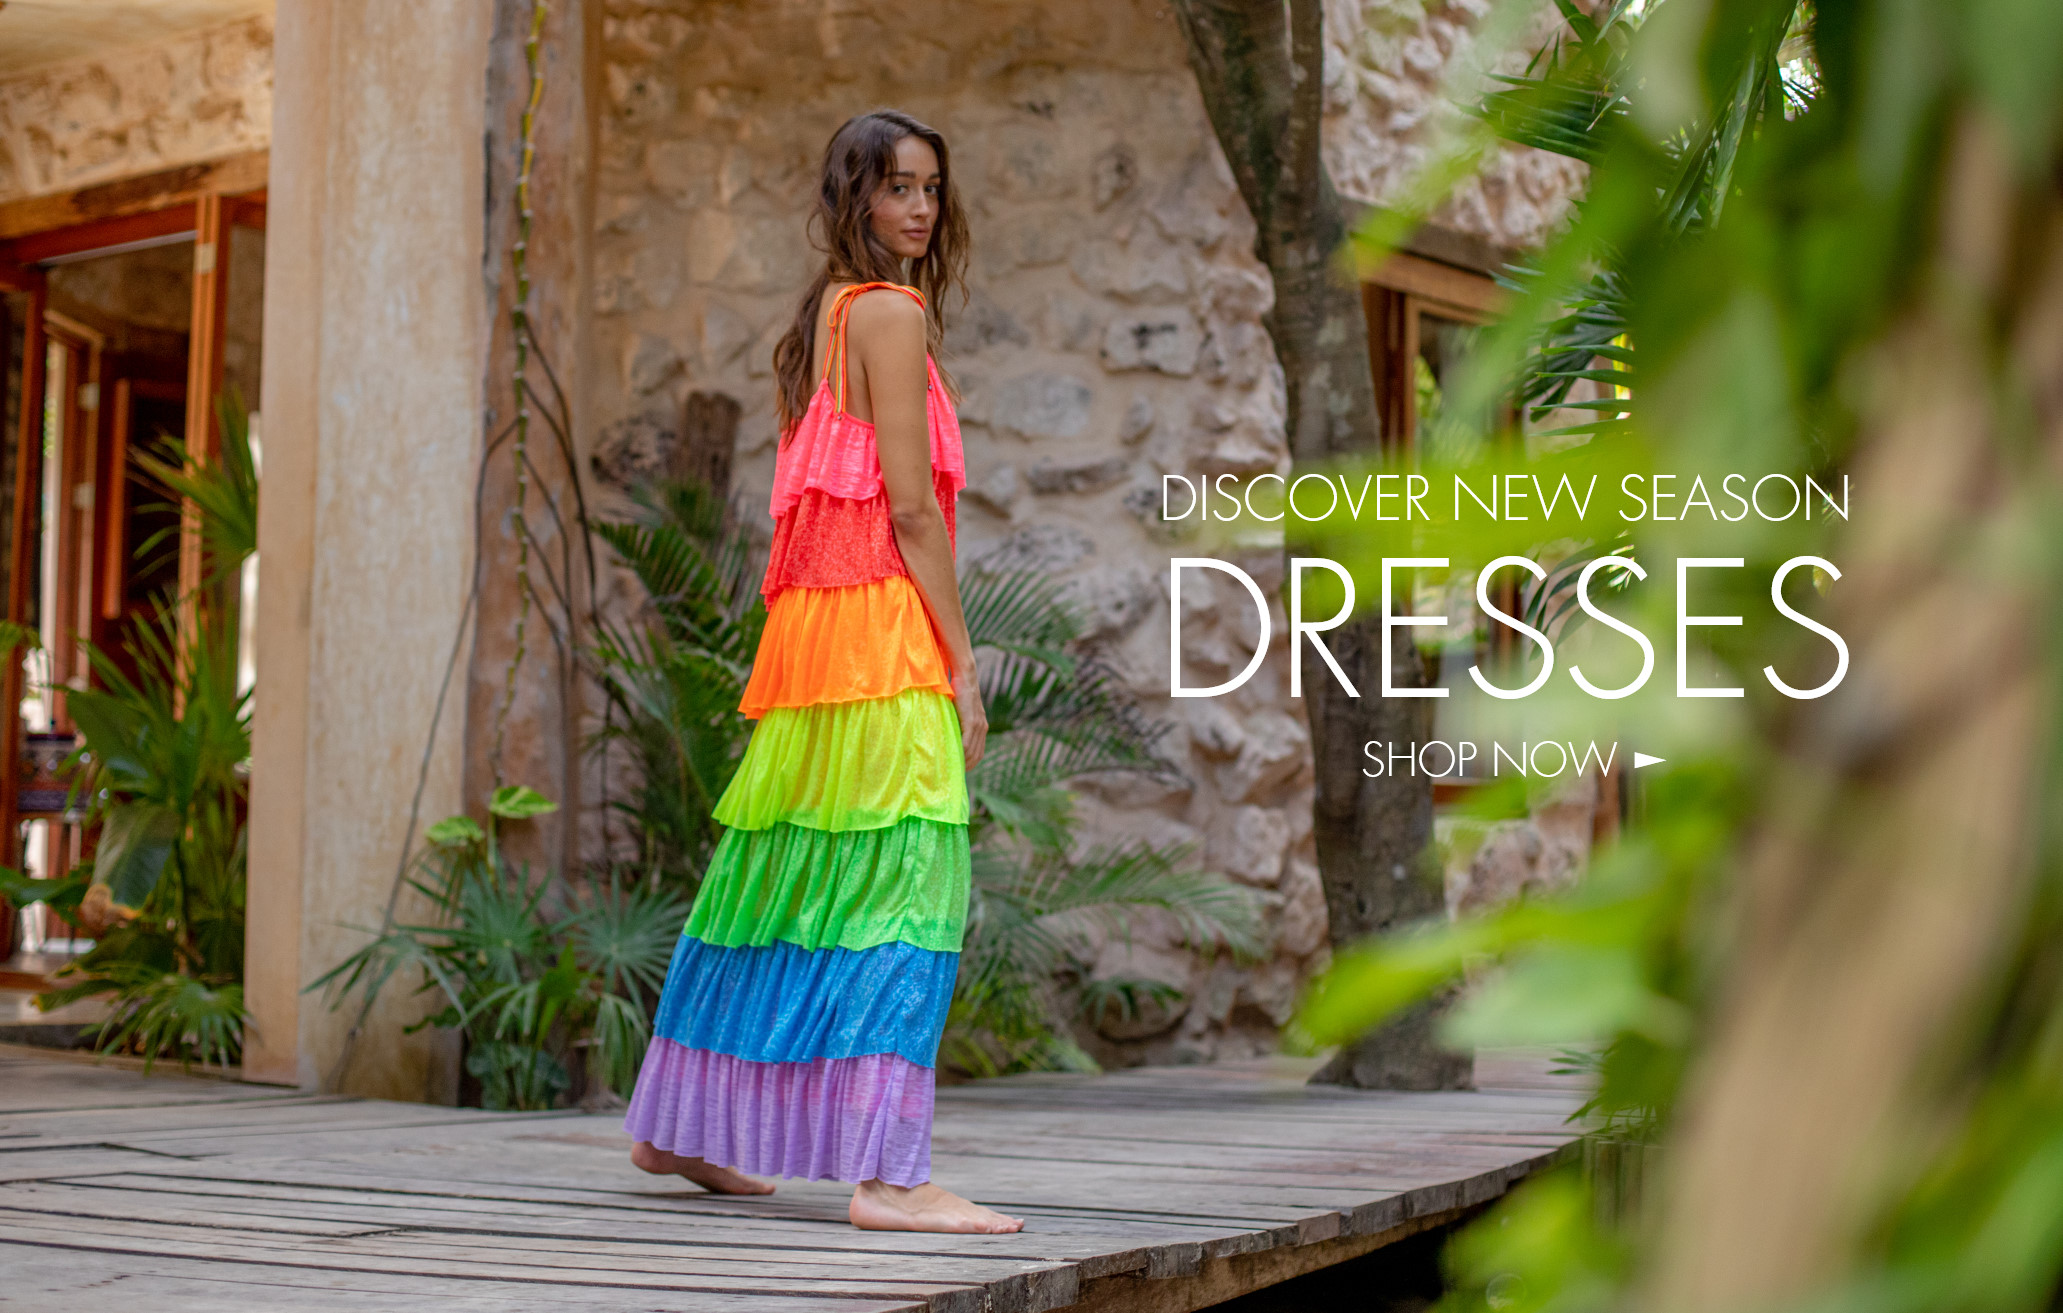 New Season Summer Dresses